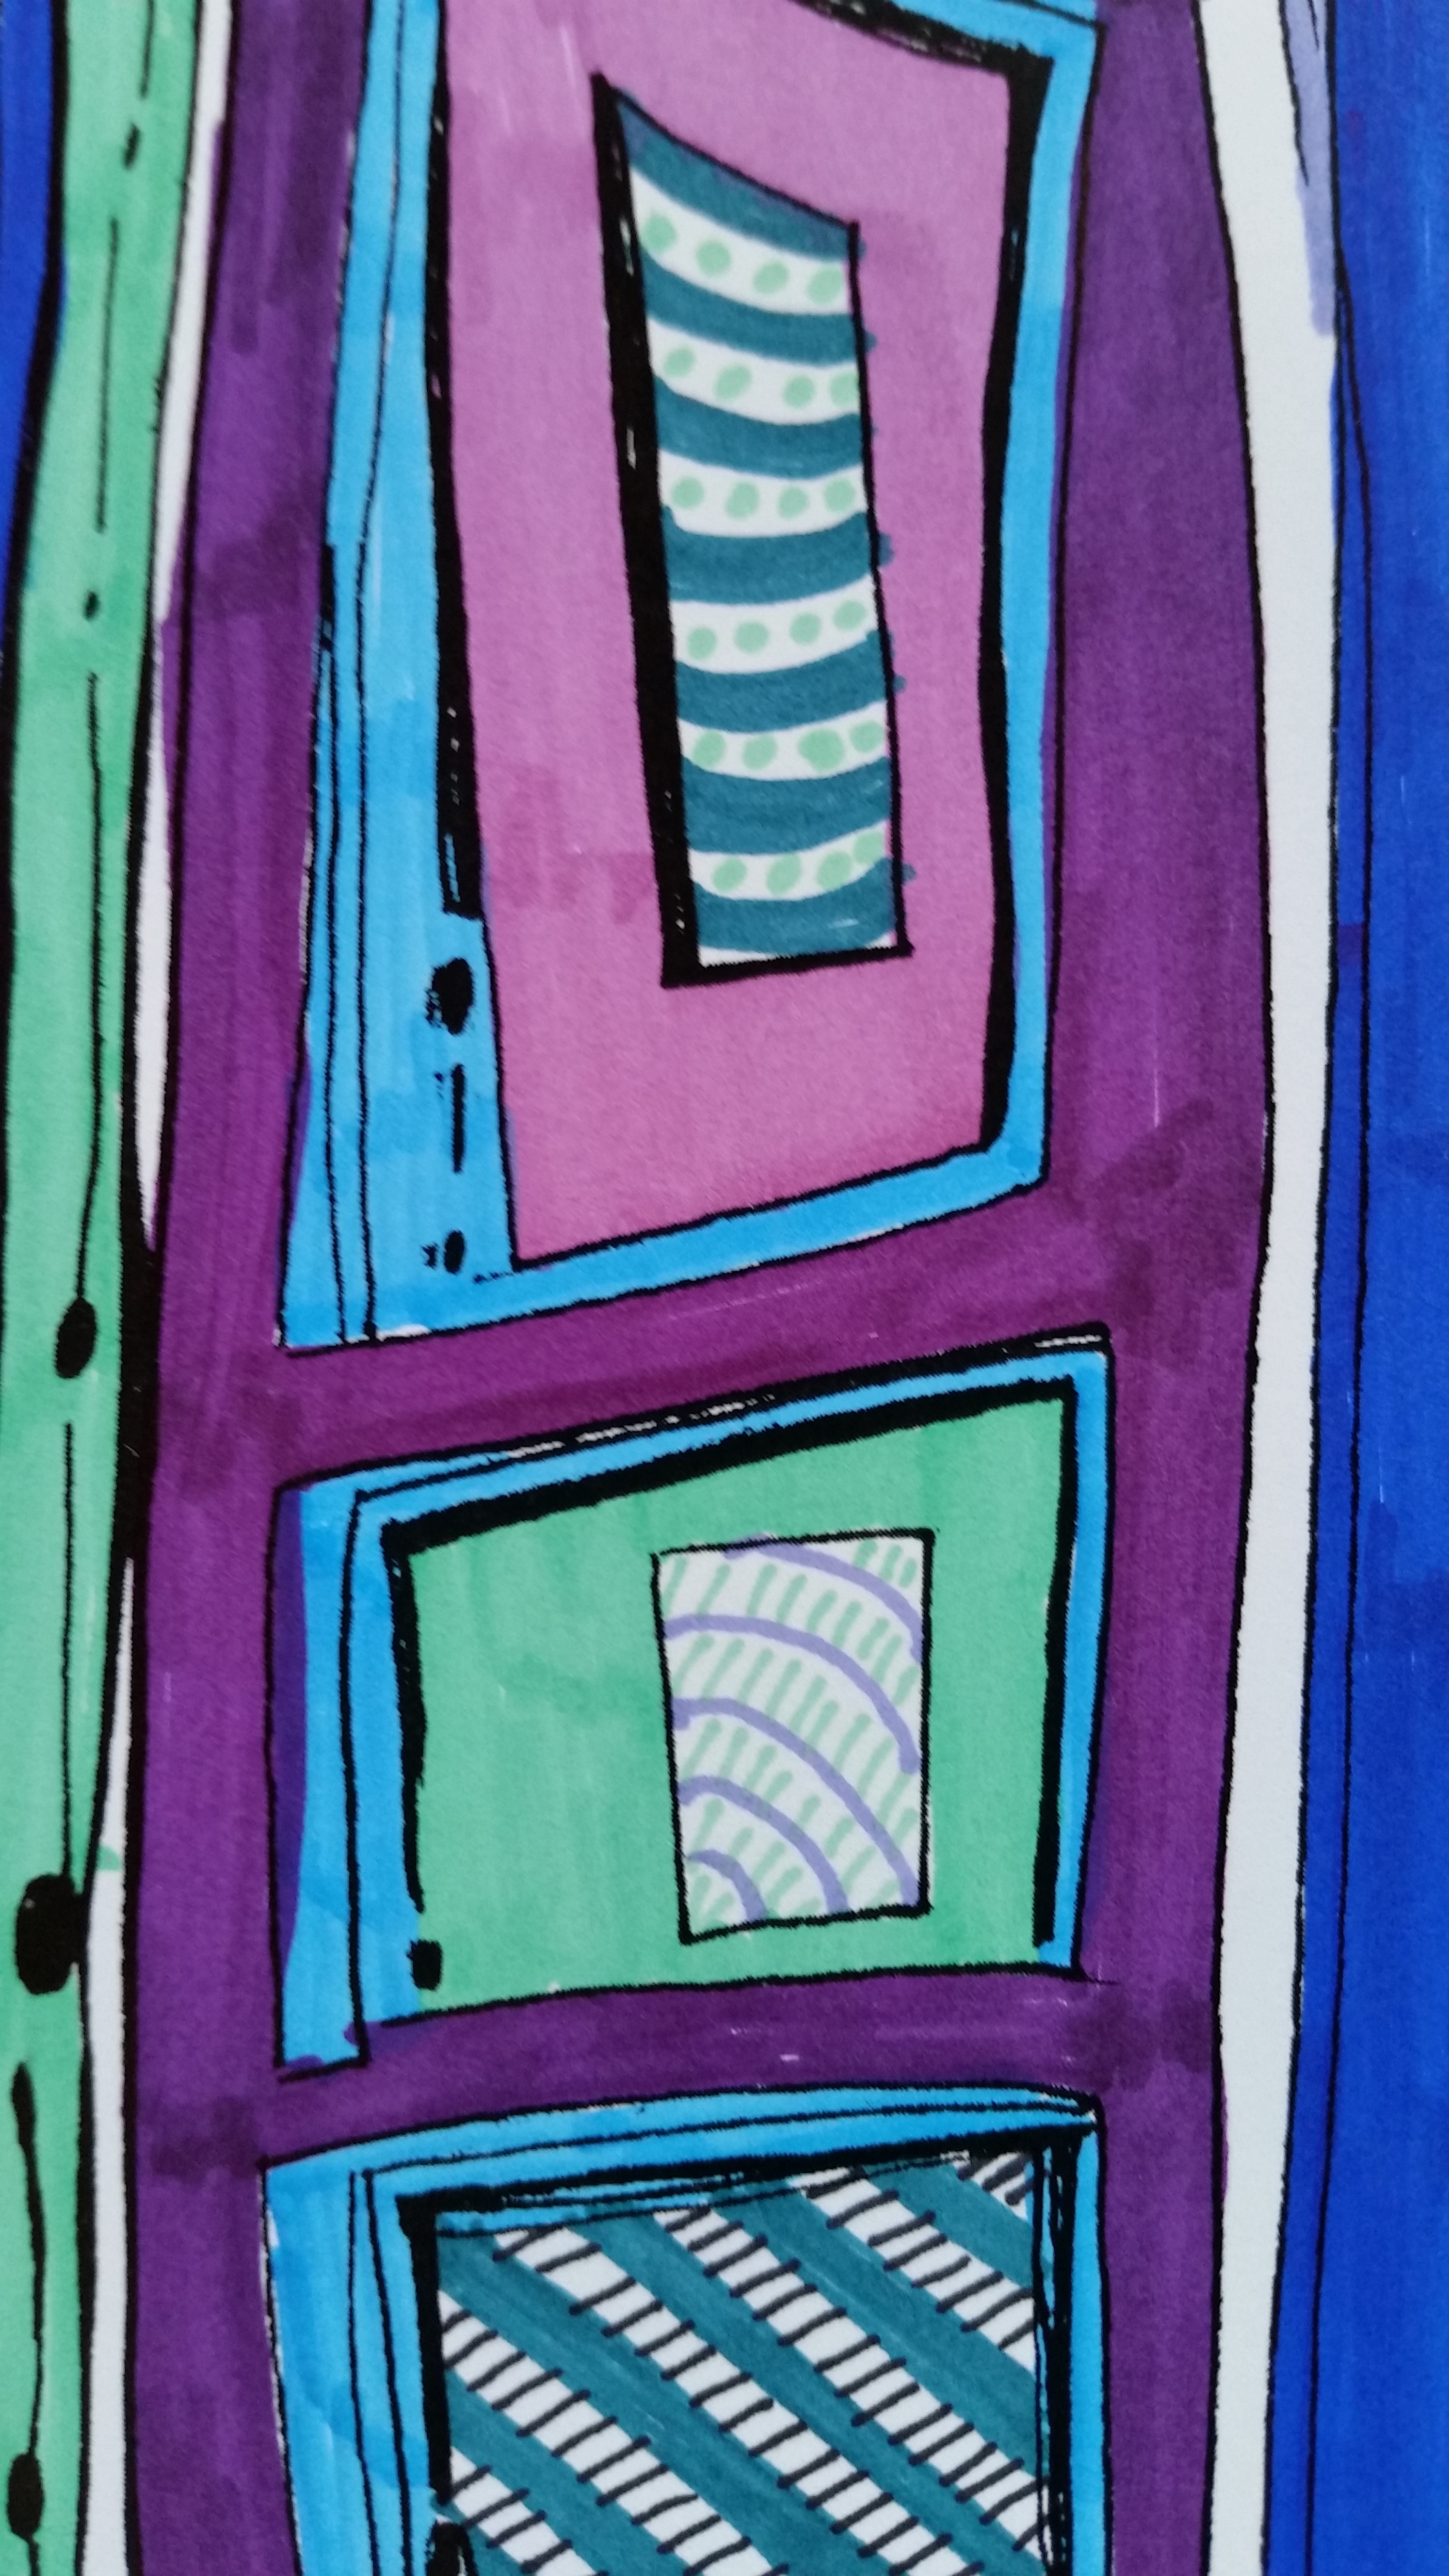 Doors, Coloring pages, Coloring book, Marfa, TX